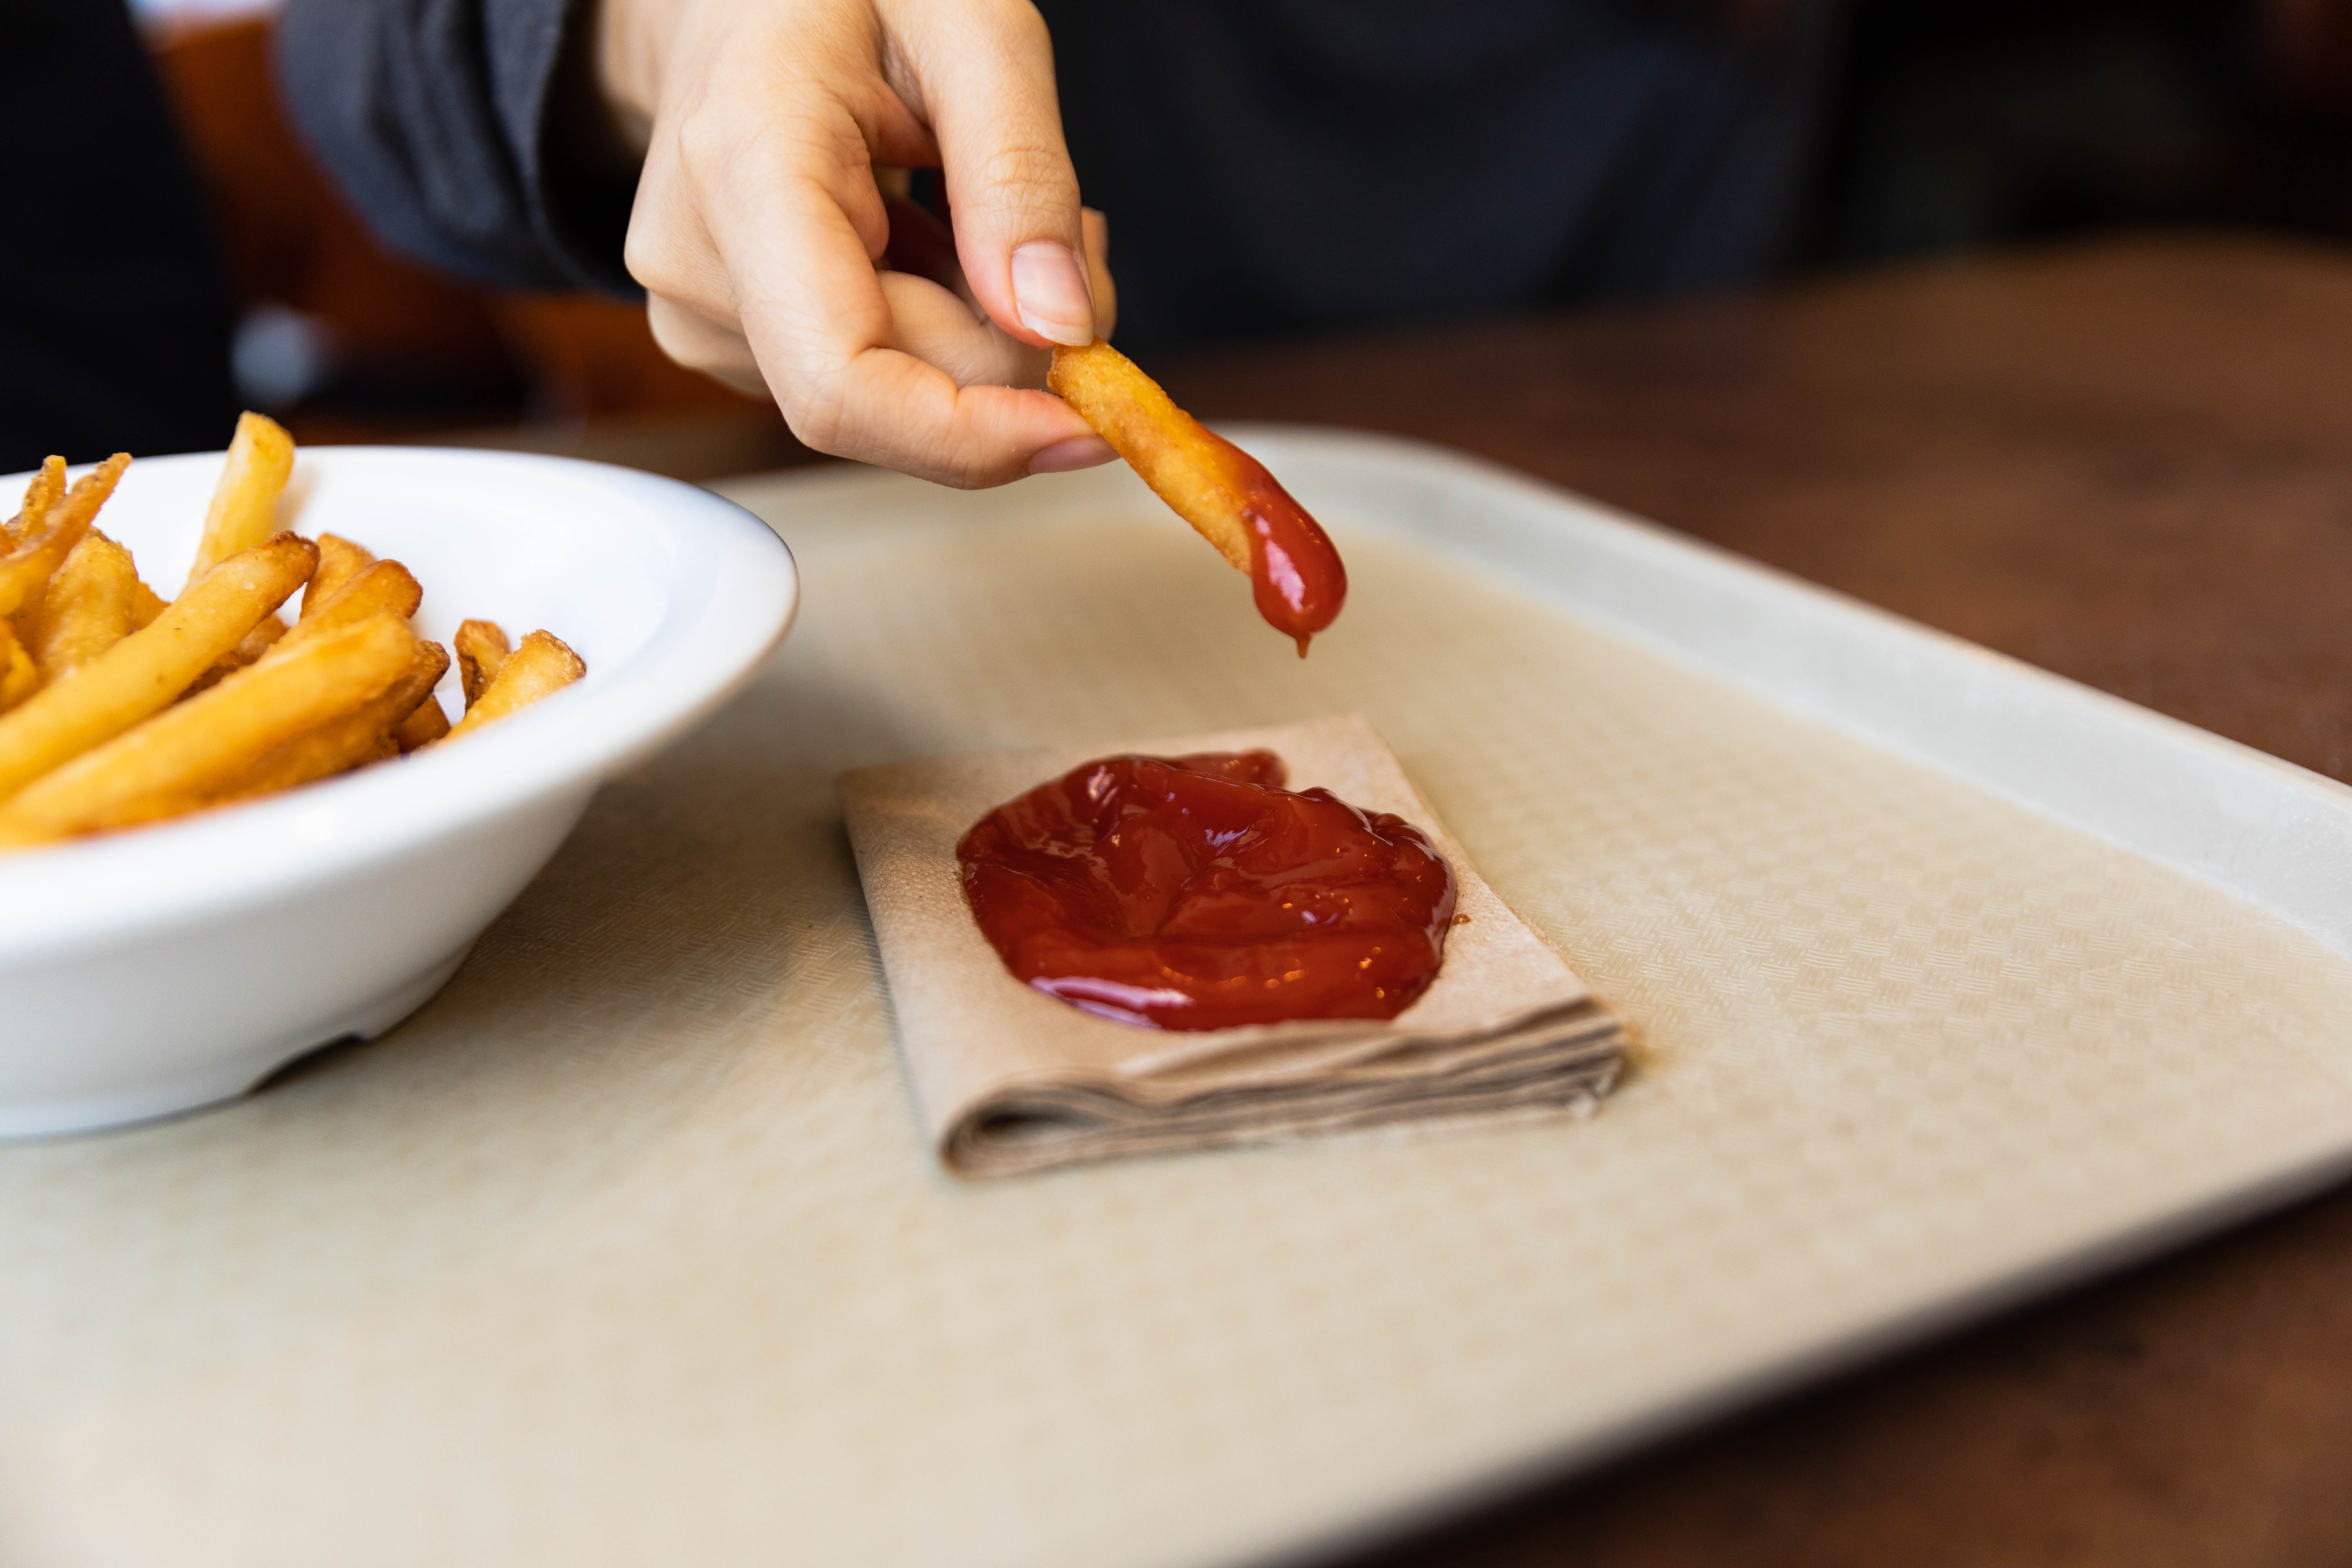 dipping a fry in ketchup